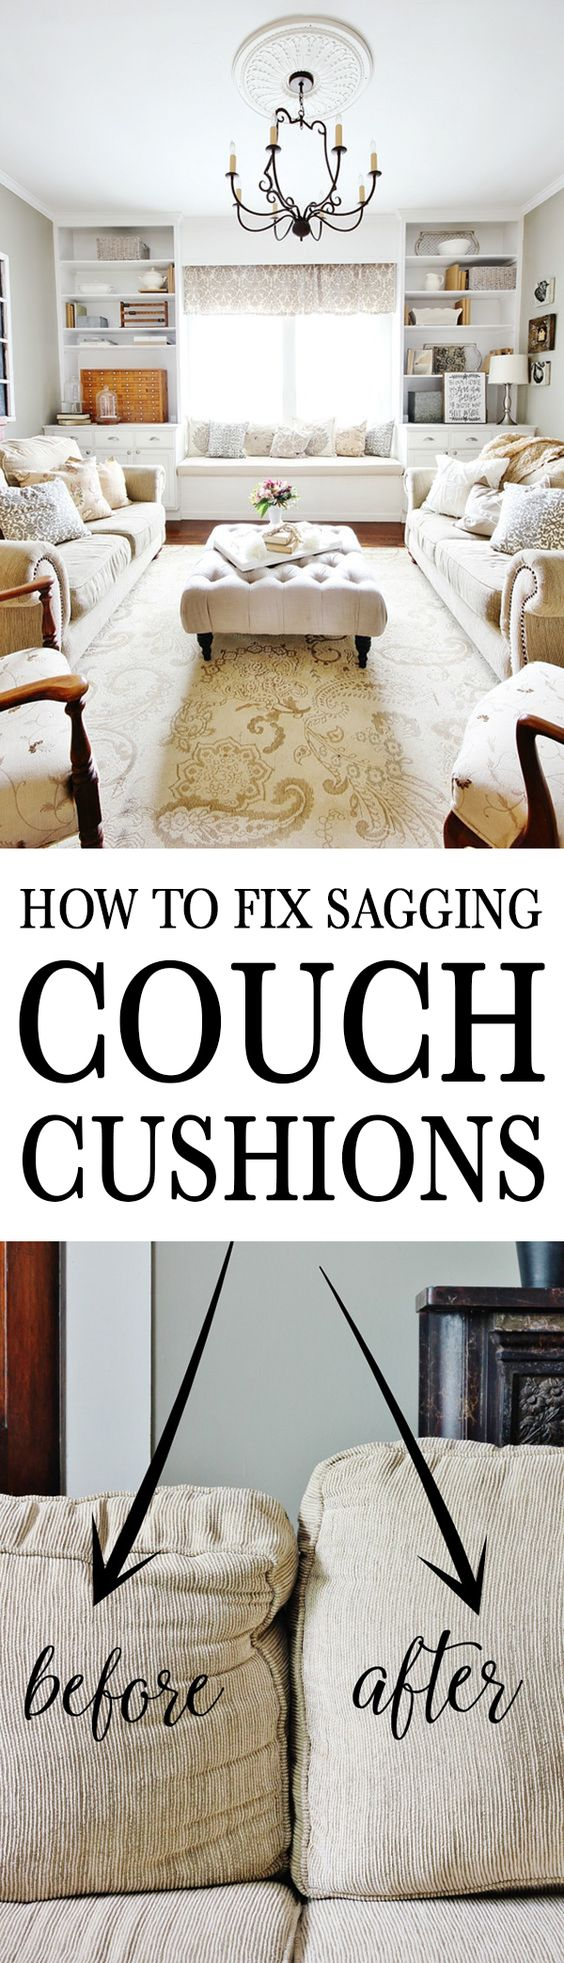 How to Fix Sagging Couch Cushions.